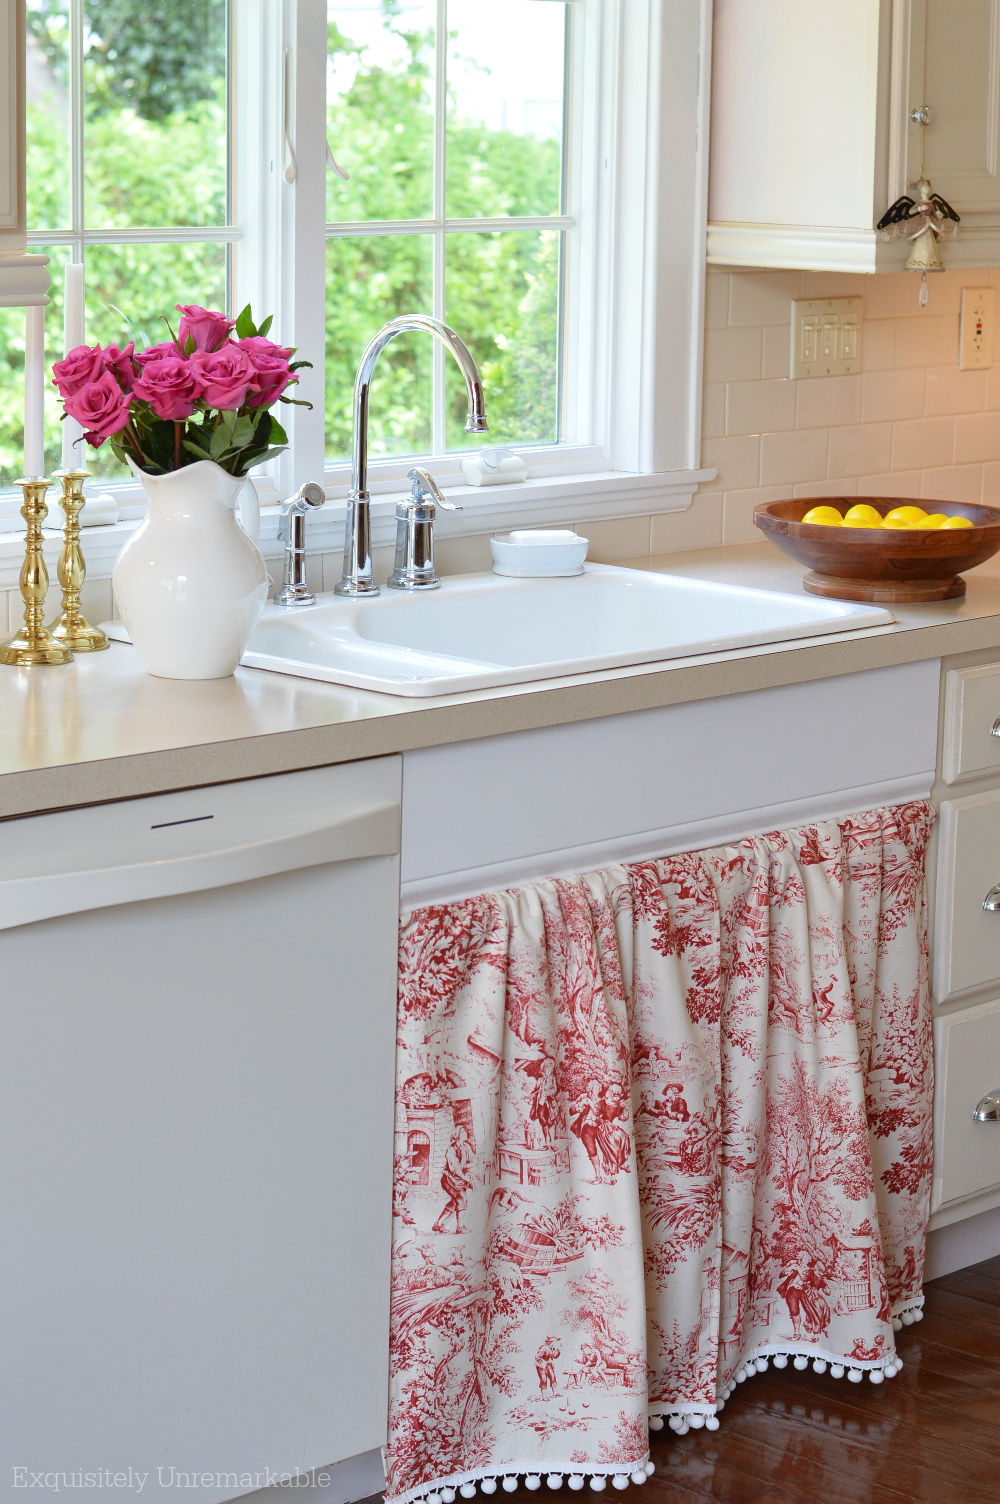 Red Toile Sink Skirt In the Kitchen